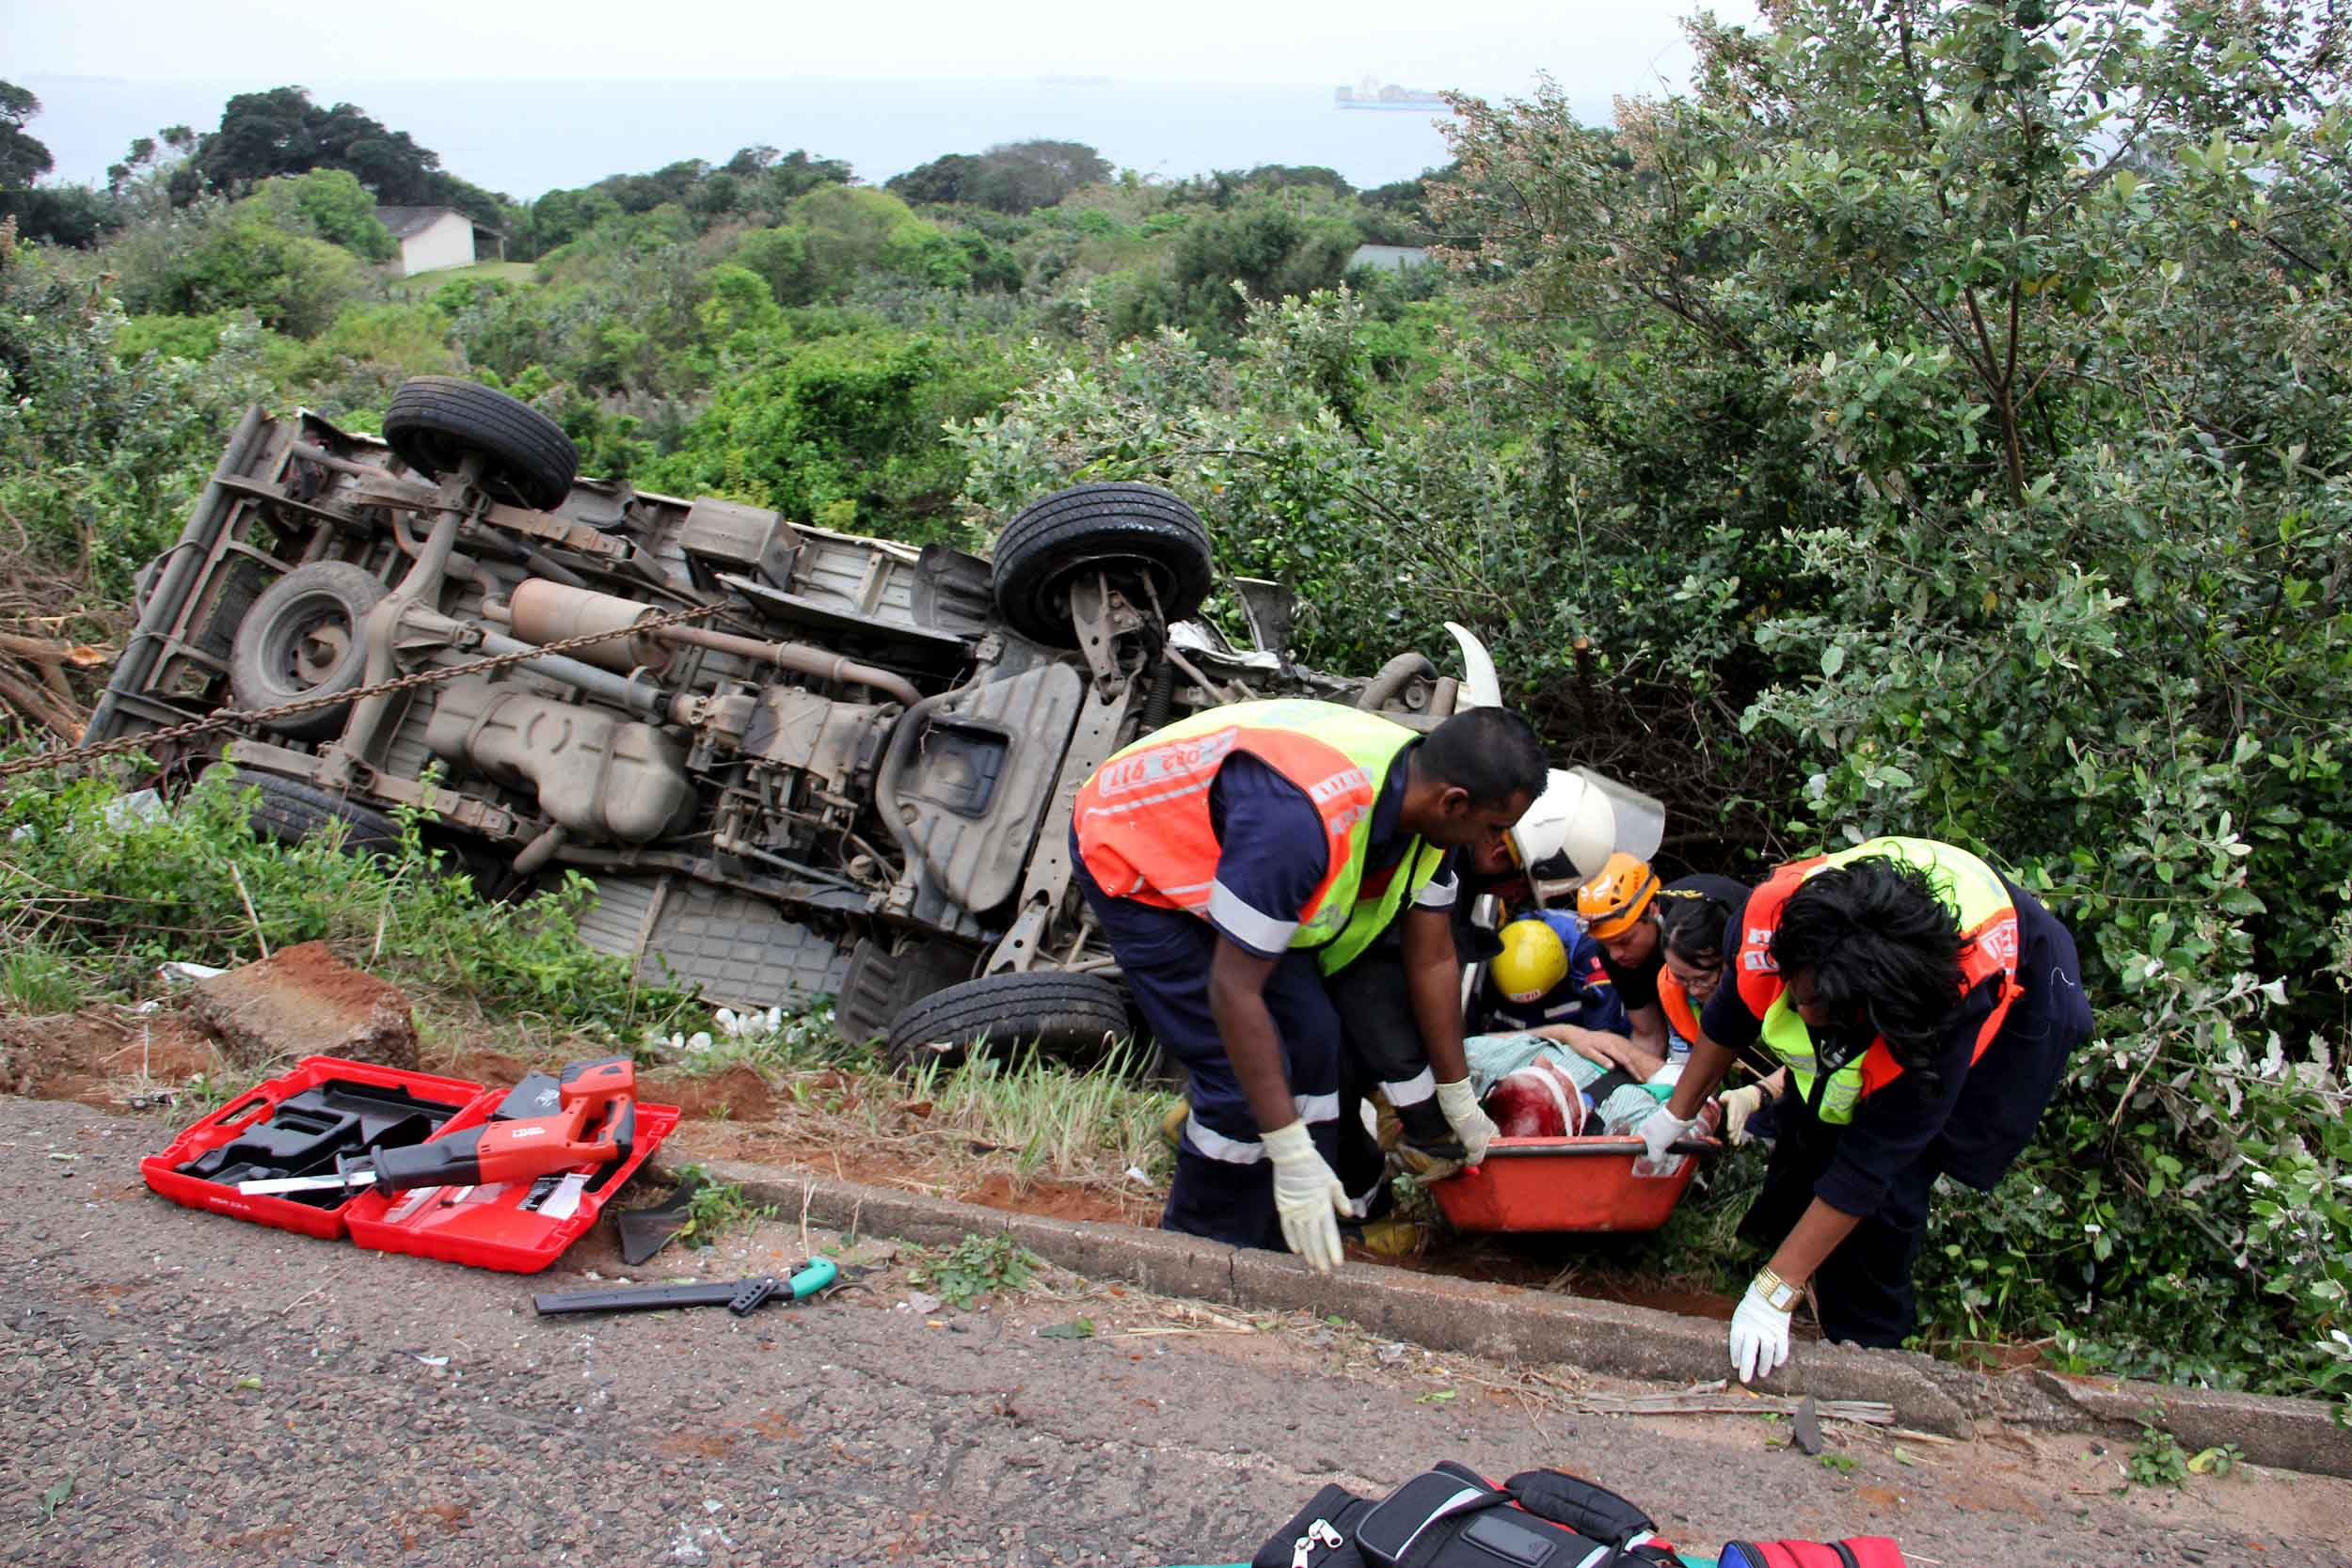 Fifteen injured in Durban M4 accident | Road Safety & Arrive